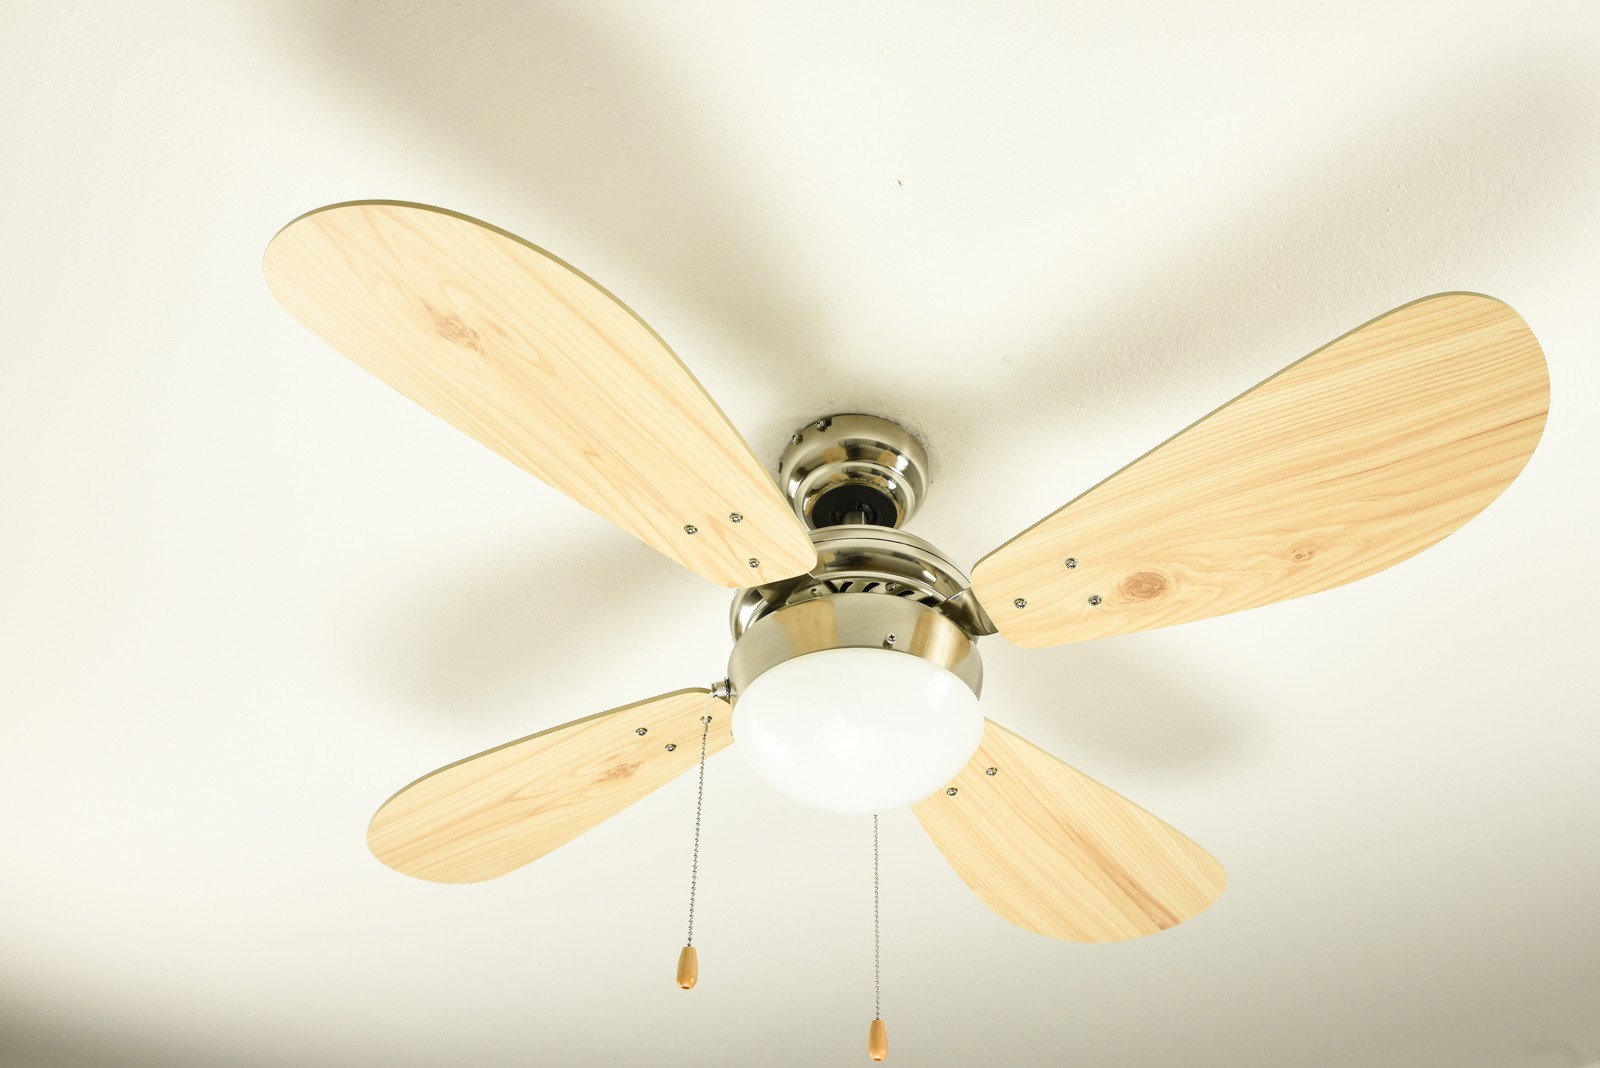 Lights On Use Ceiling Fan With Light Kit Instead Of Light Fittings Ceres Webshop